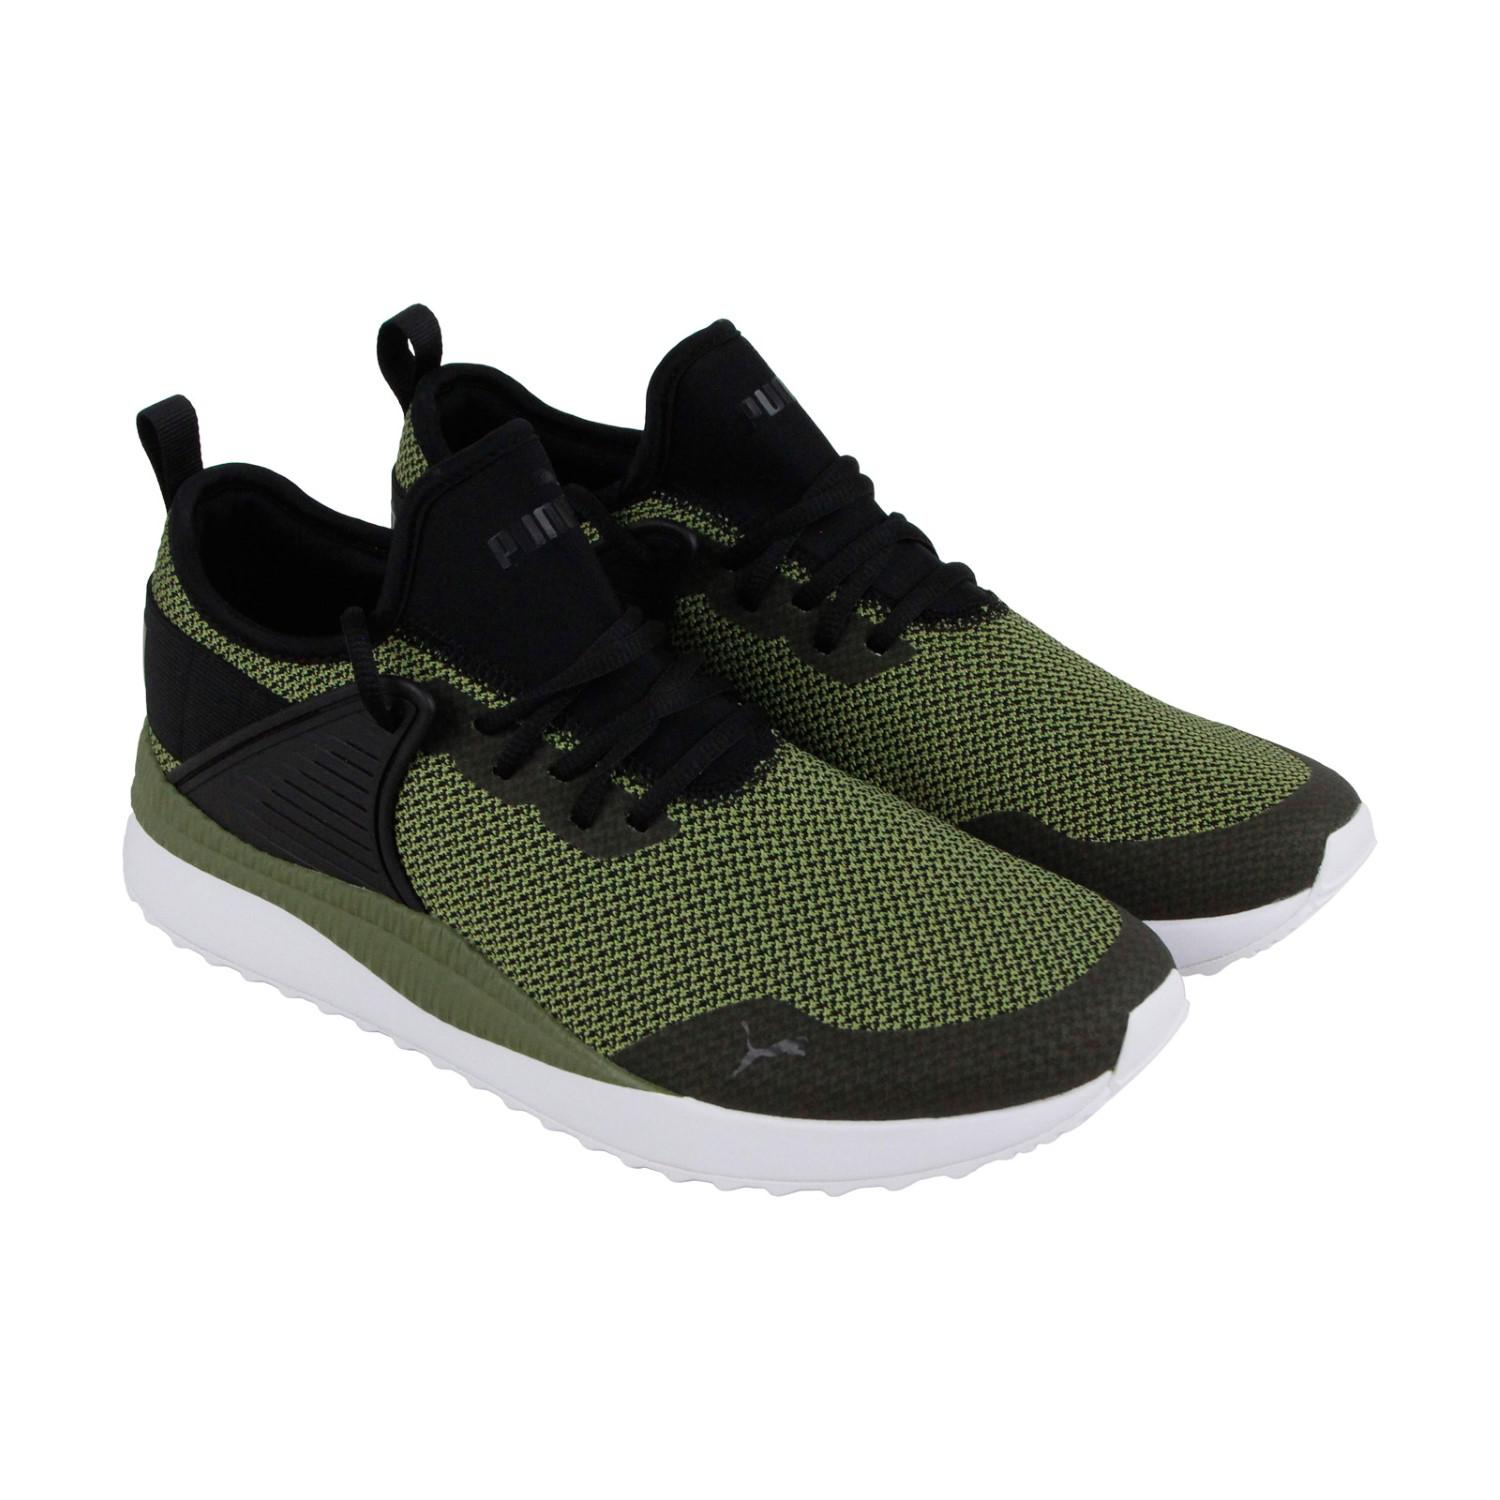 6257eb38f0 Lyst - PUMA Pacer Next Cage Gk Black Capulet Olive Lace Up Sneakers ...